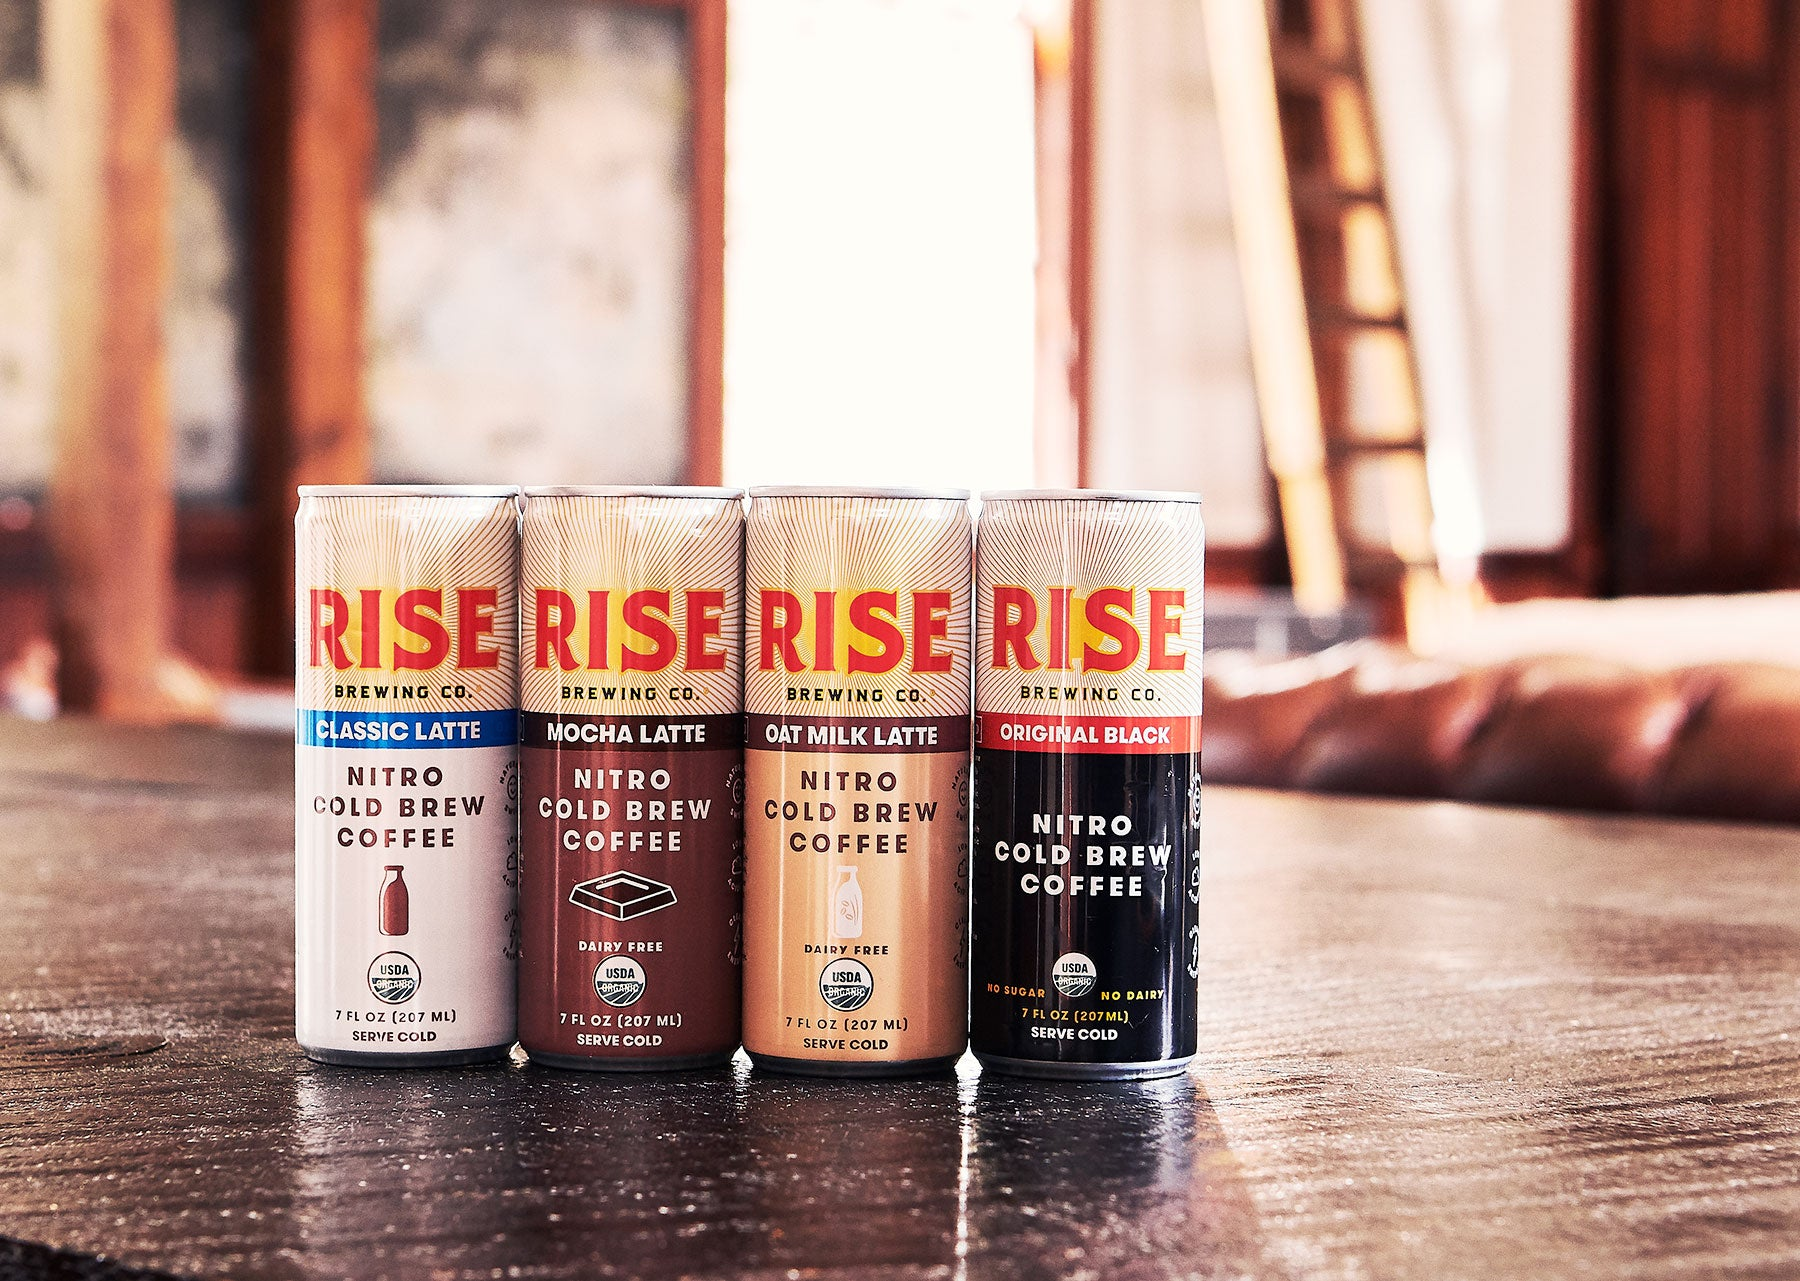 RISE-Nitro-College-Black-Latte-Oat-Milk